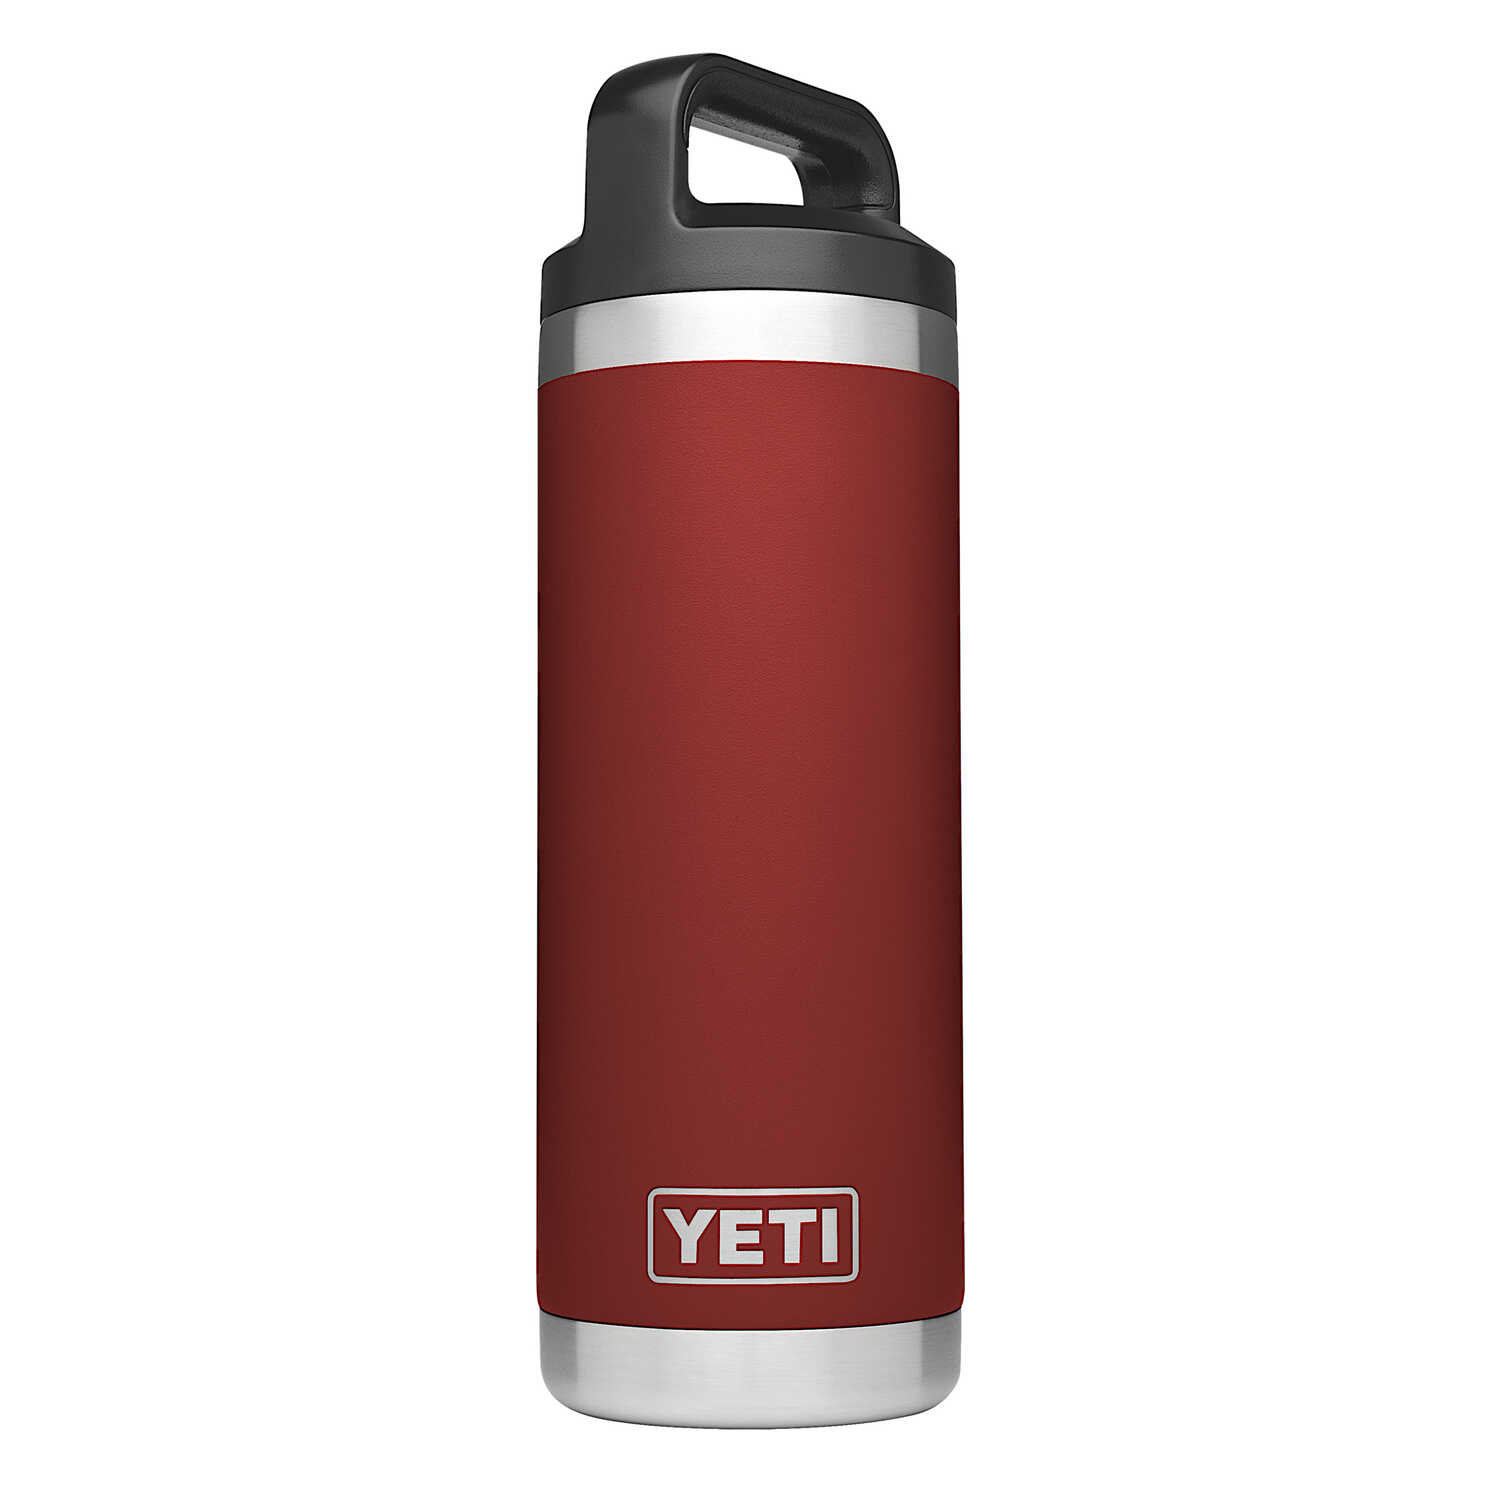 YETI  Rambler  Stainless Steel  BPA Free 18 oz. Insulated Bottle  Brick Red